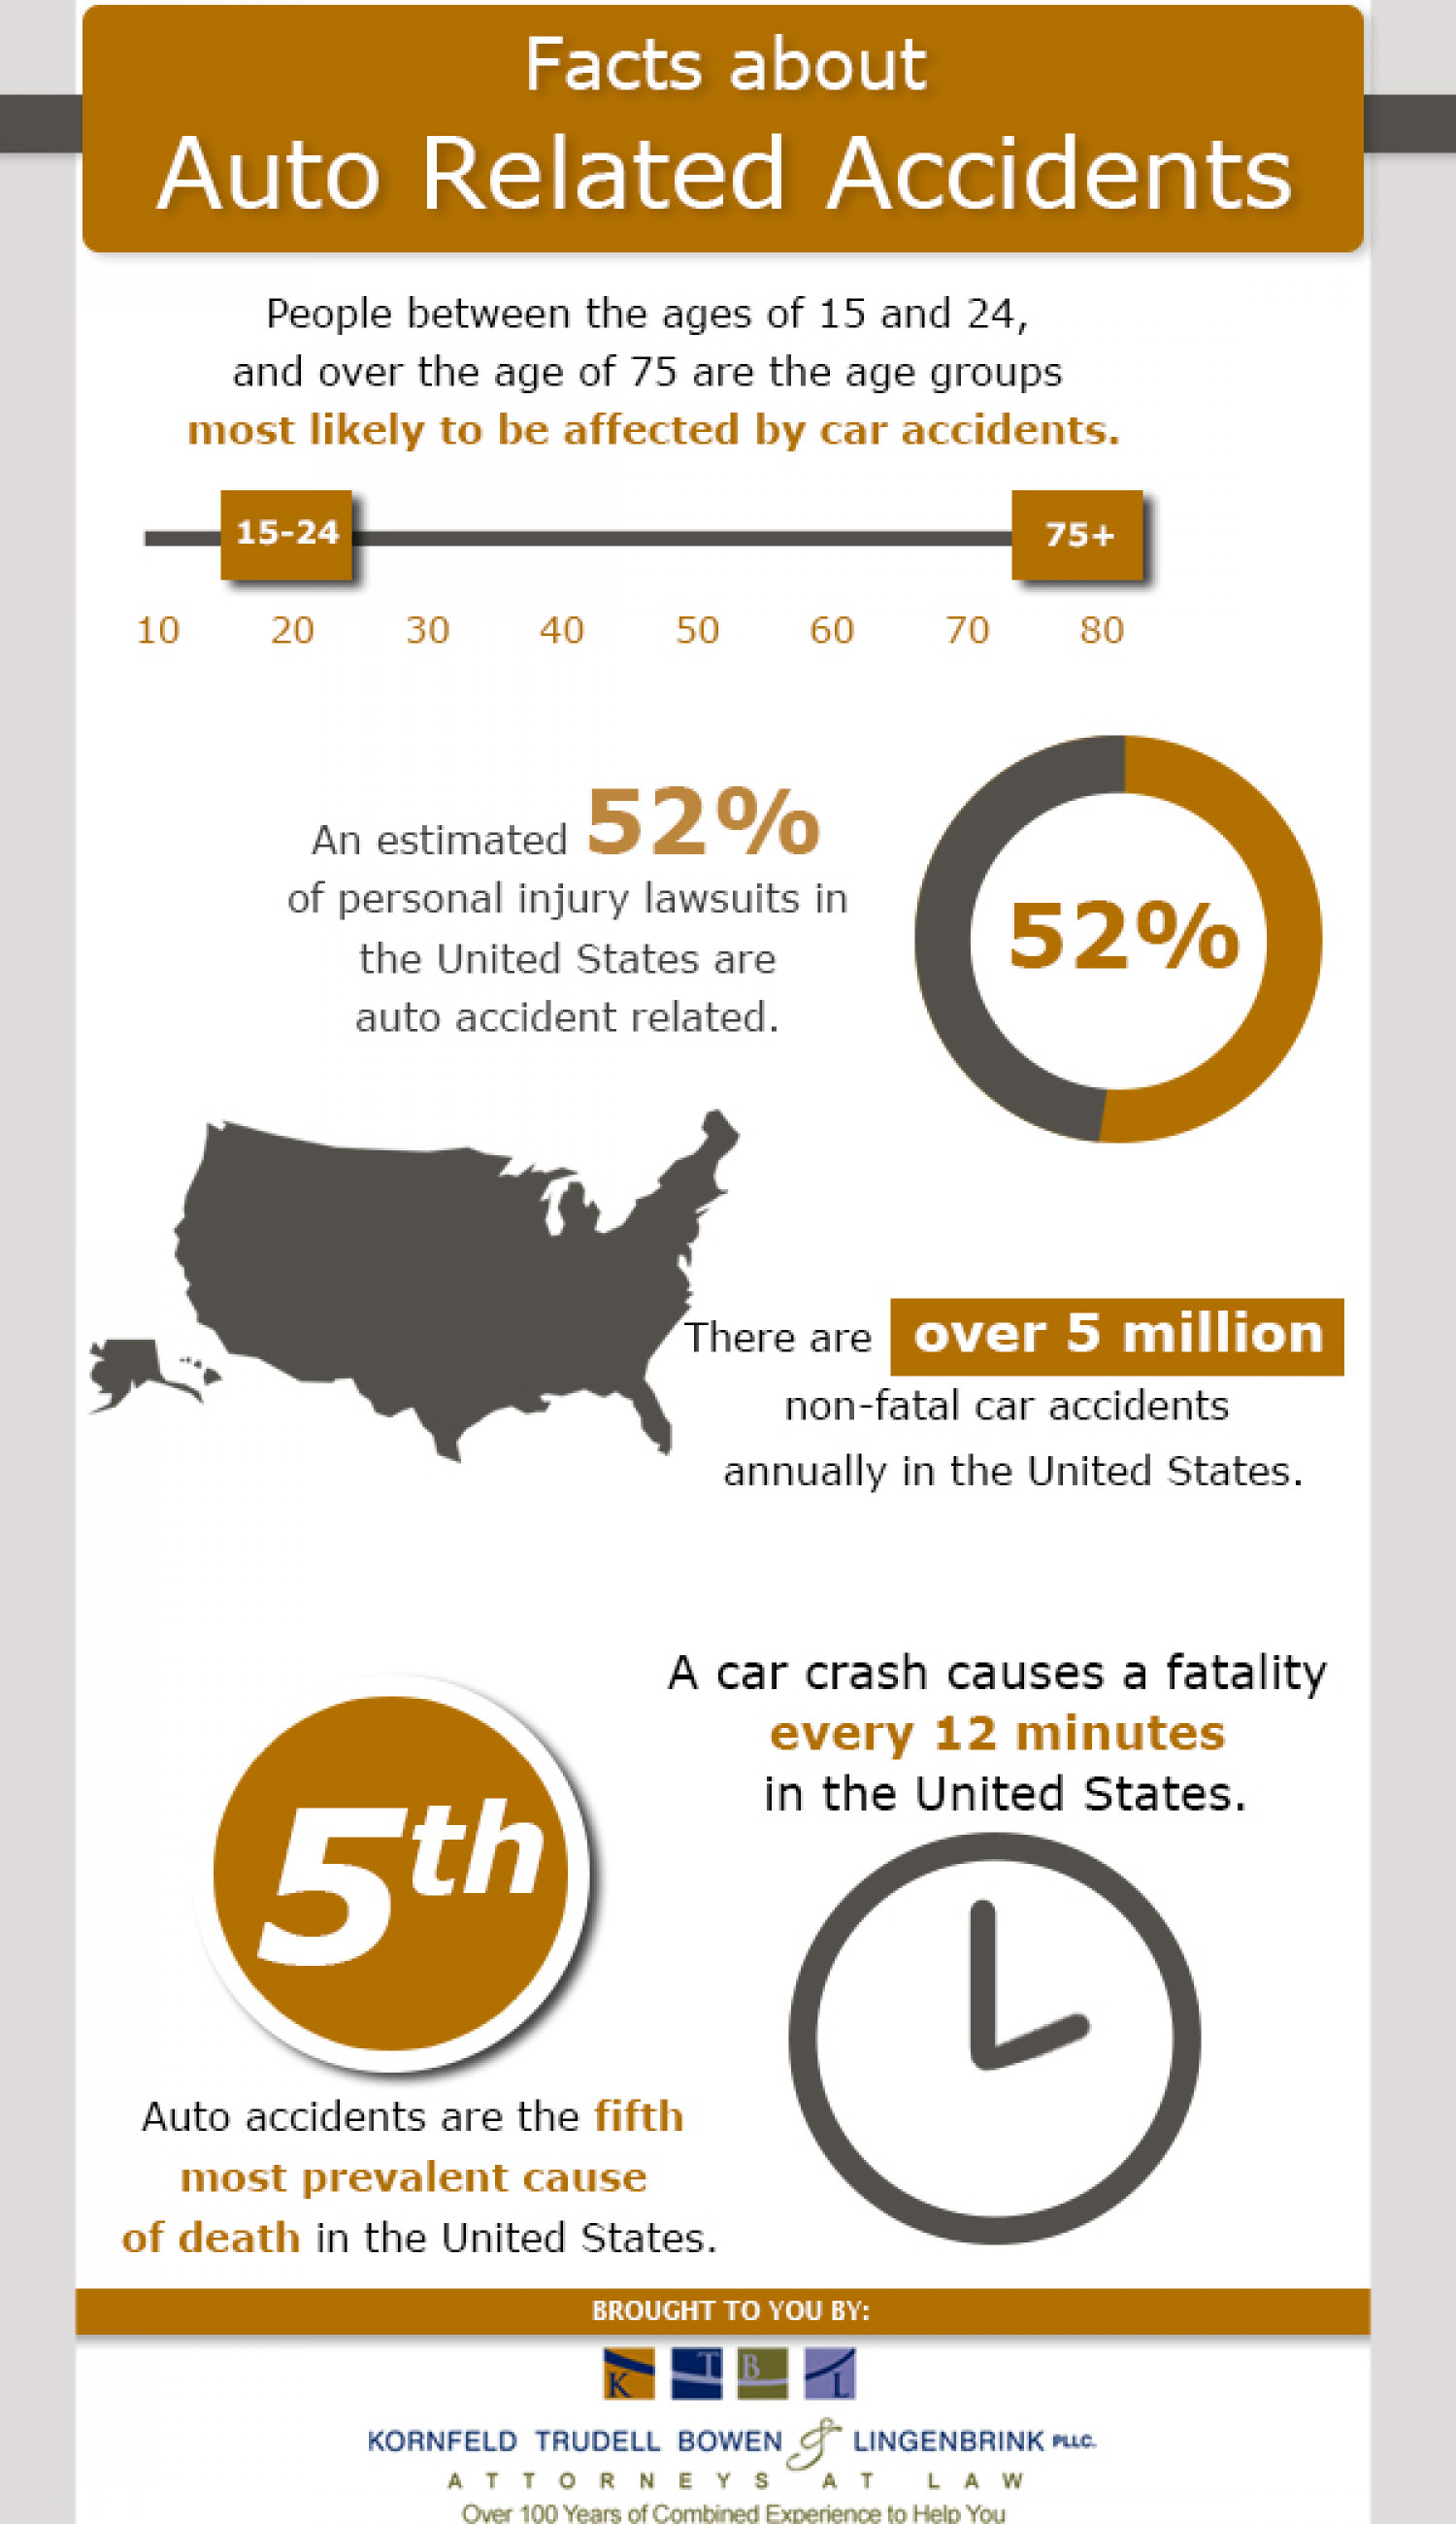 Auto Related Accidents Infographic